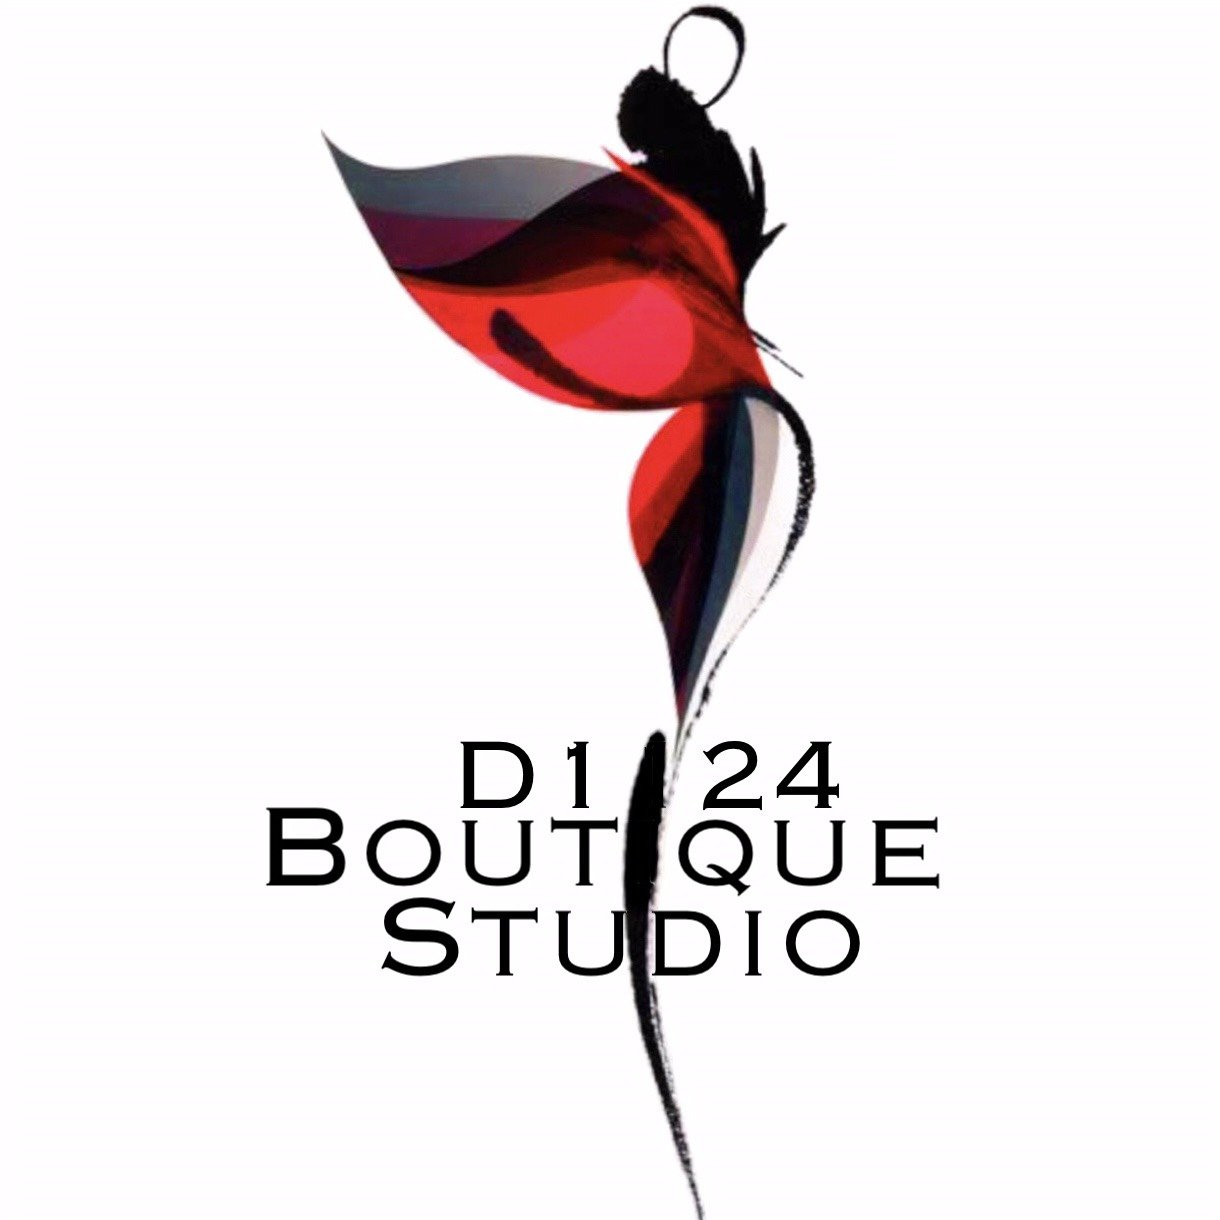 D124 Boutique Studio